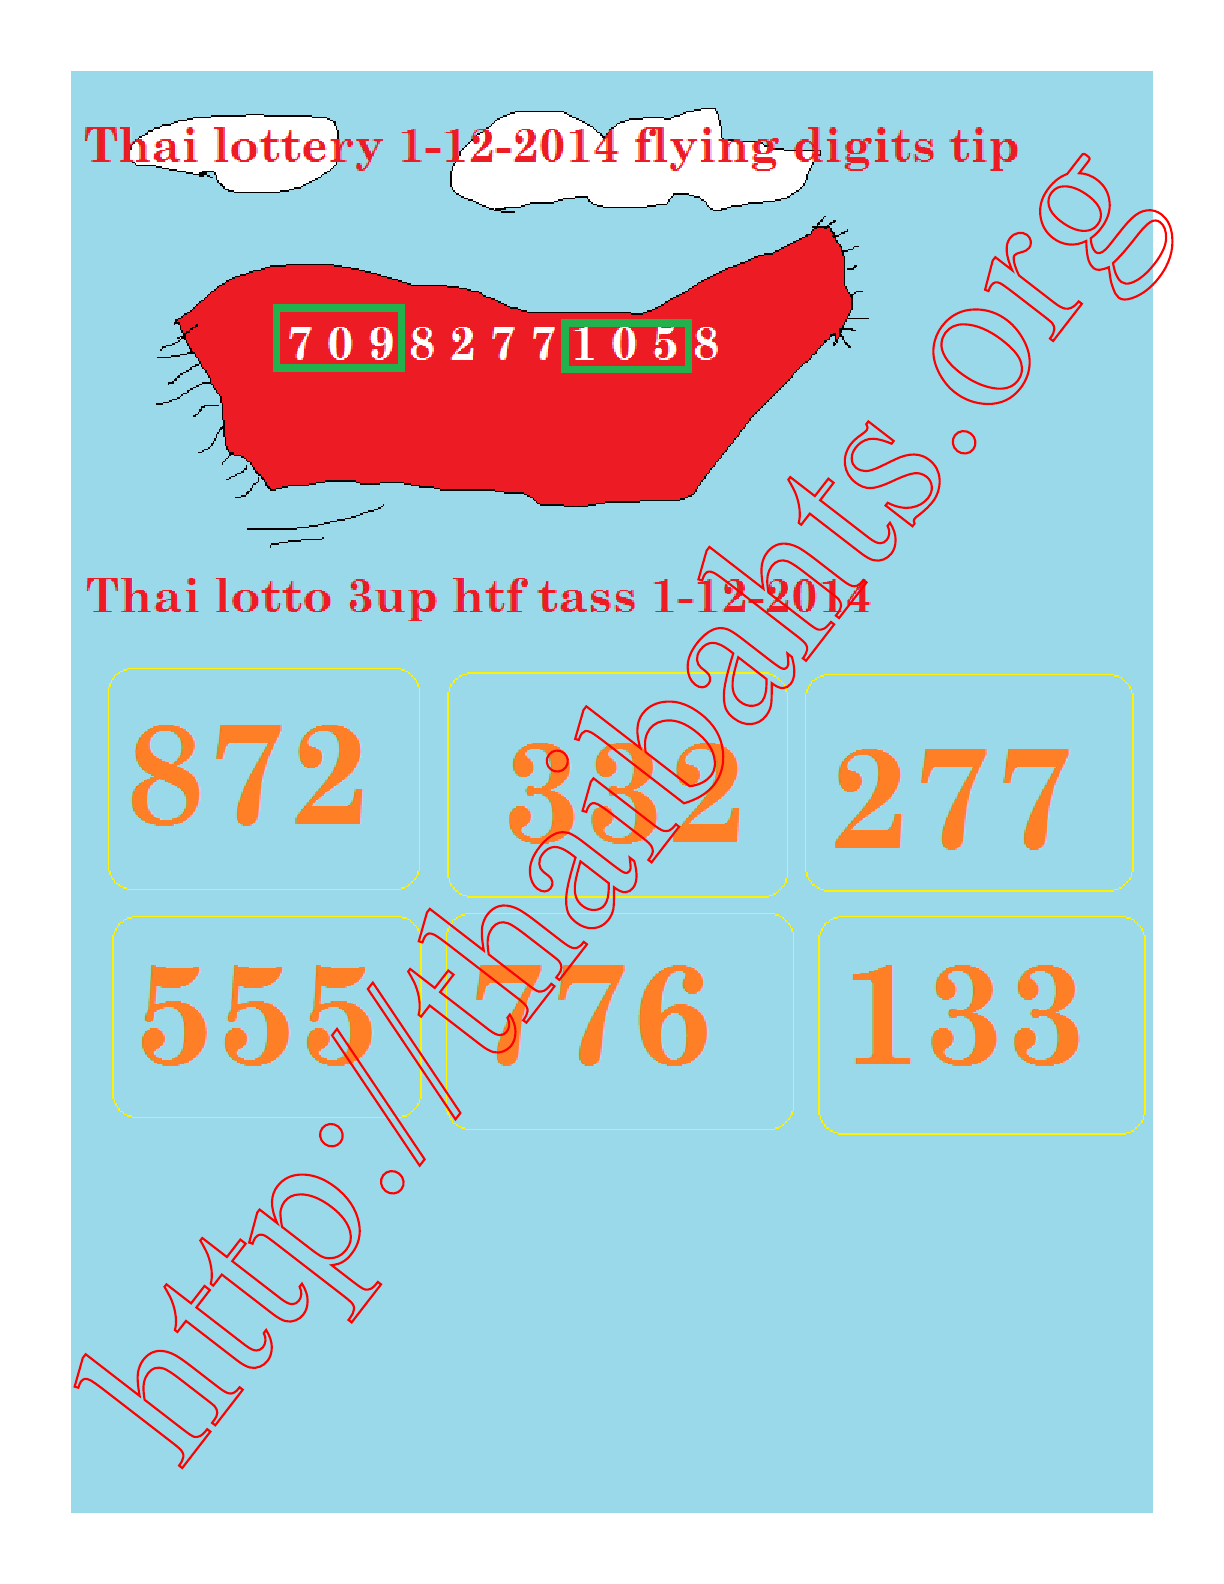 hhh21 - Thai lottery results 1-12-2014 necessary tip